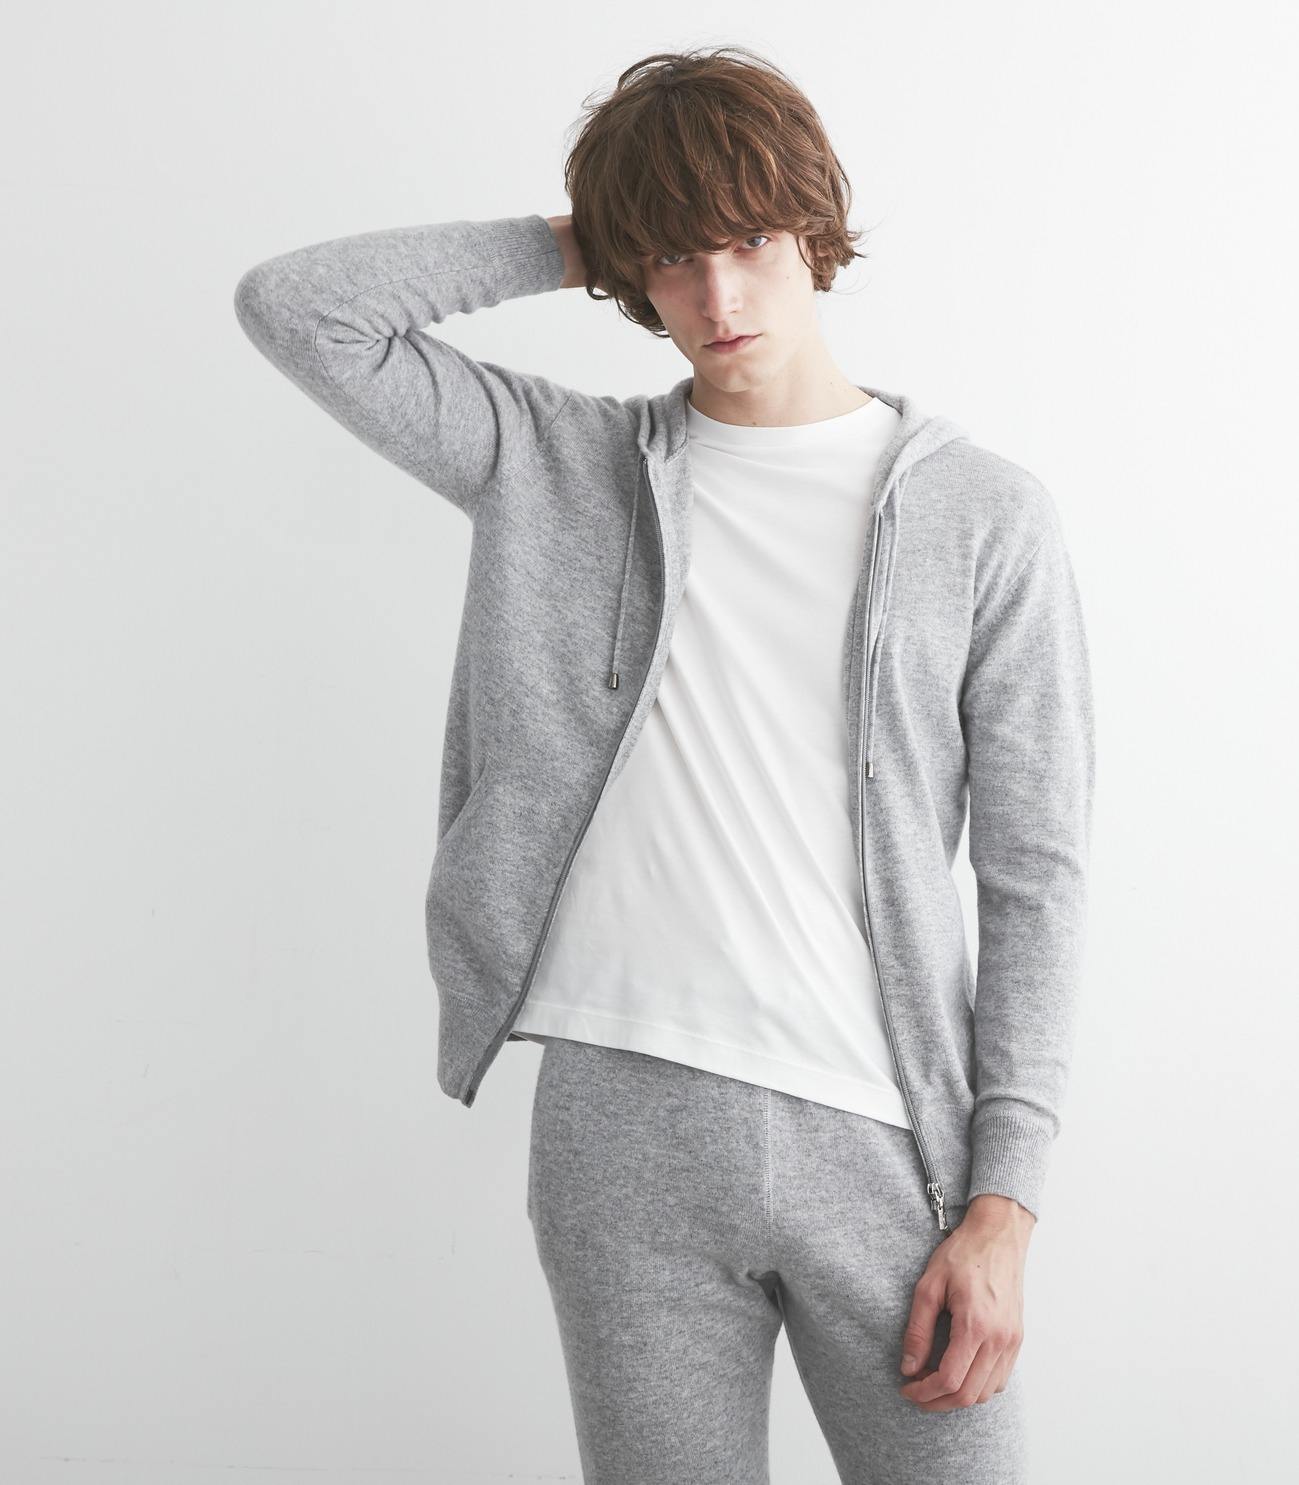 Men's pure cashmere zip parka 詳細画像 grey 6